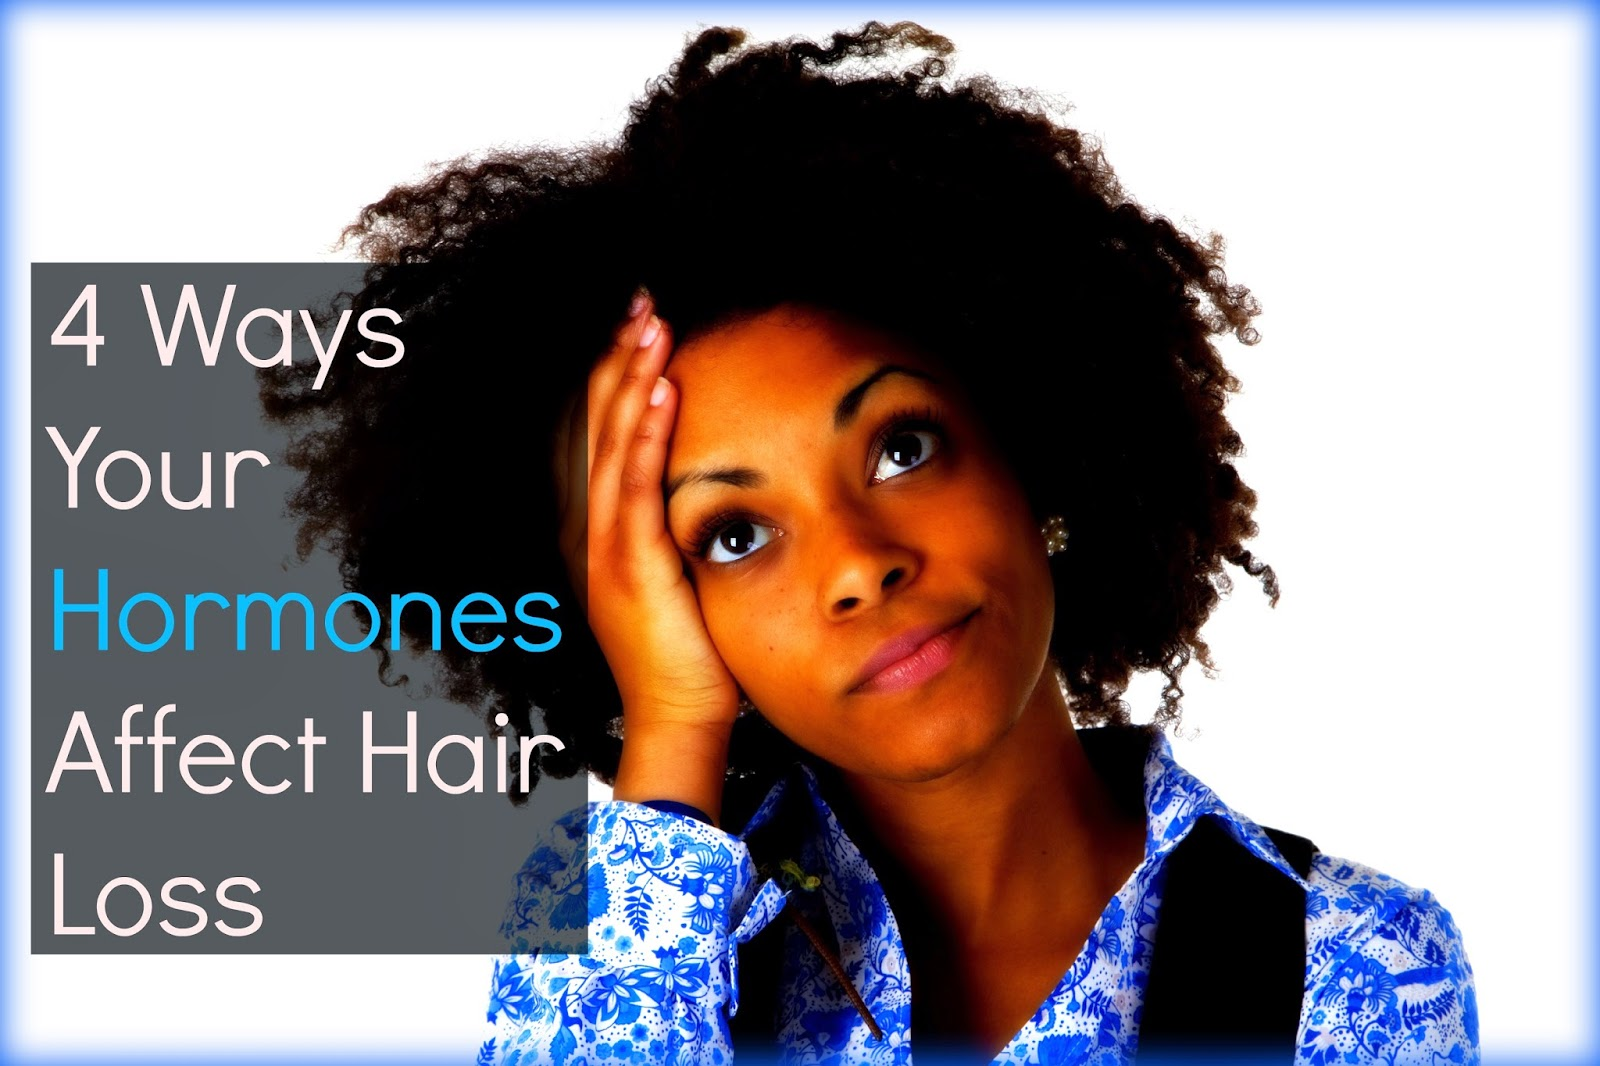 4 Ways Your Hormones Affect Hair Loss